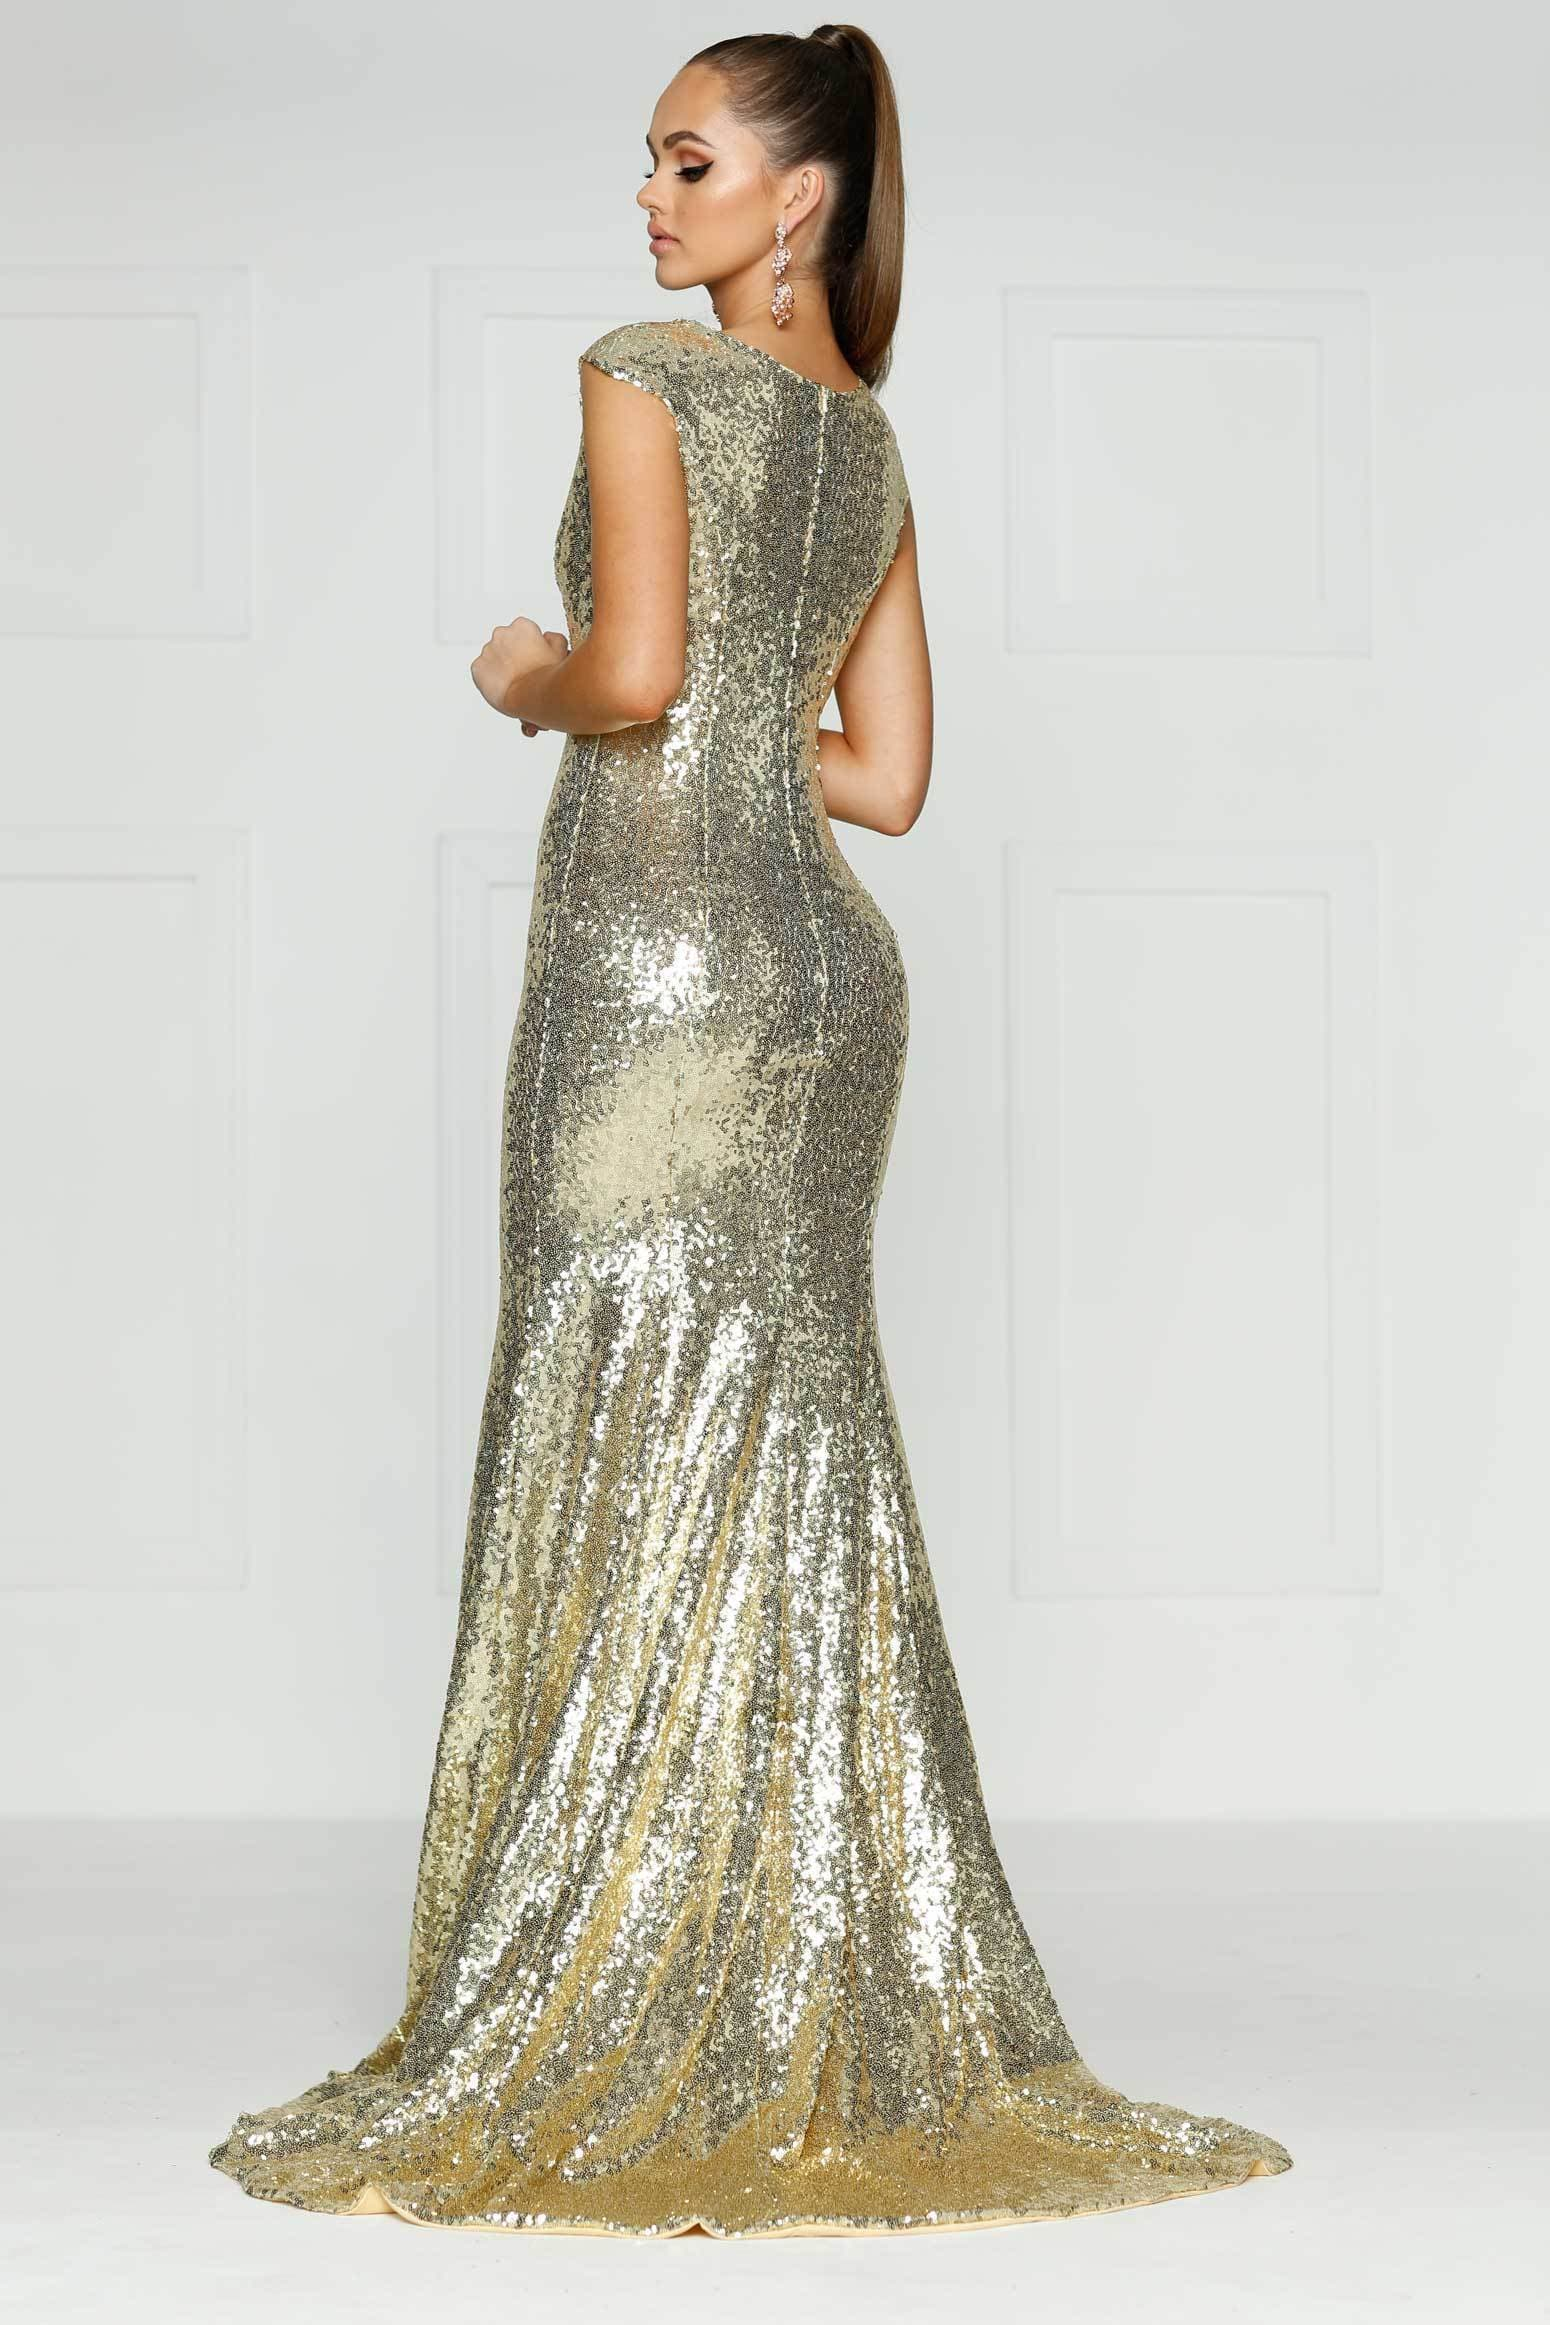 A&N Lila - Champagne Sequin Gown with High Neck and Side Slit – A&N ...